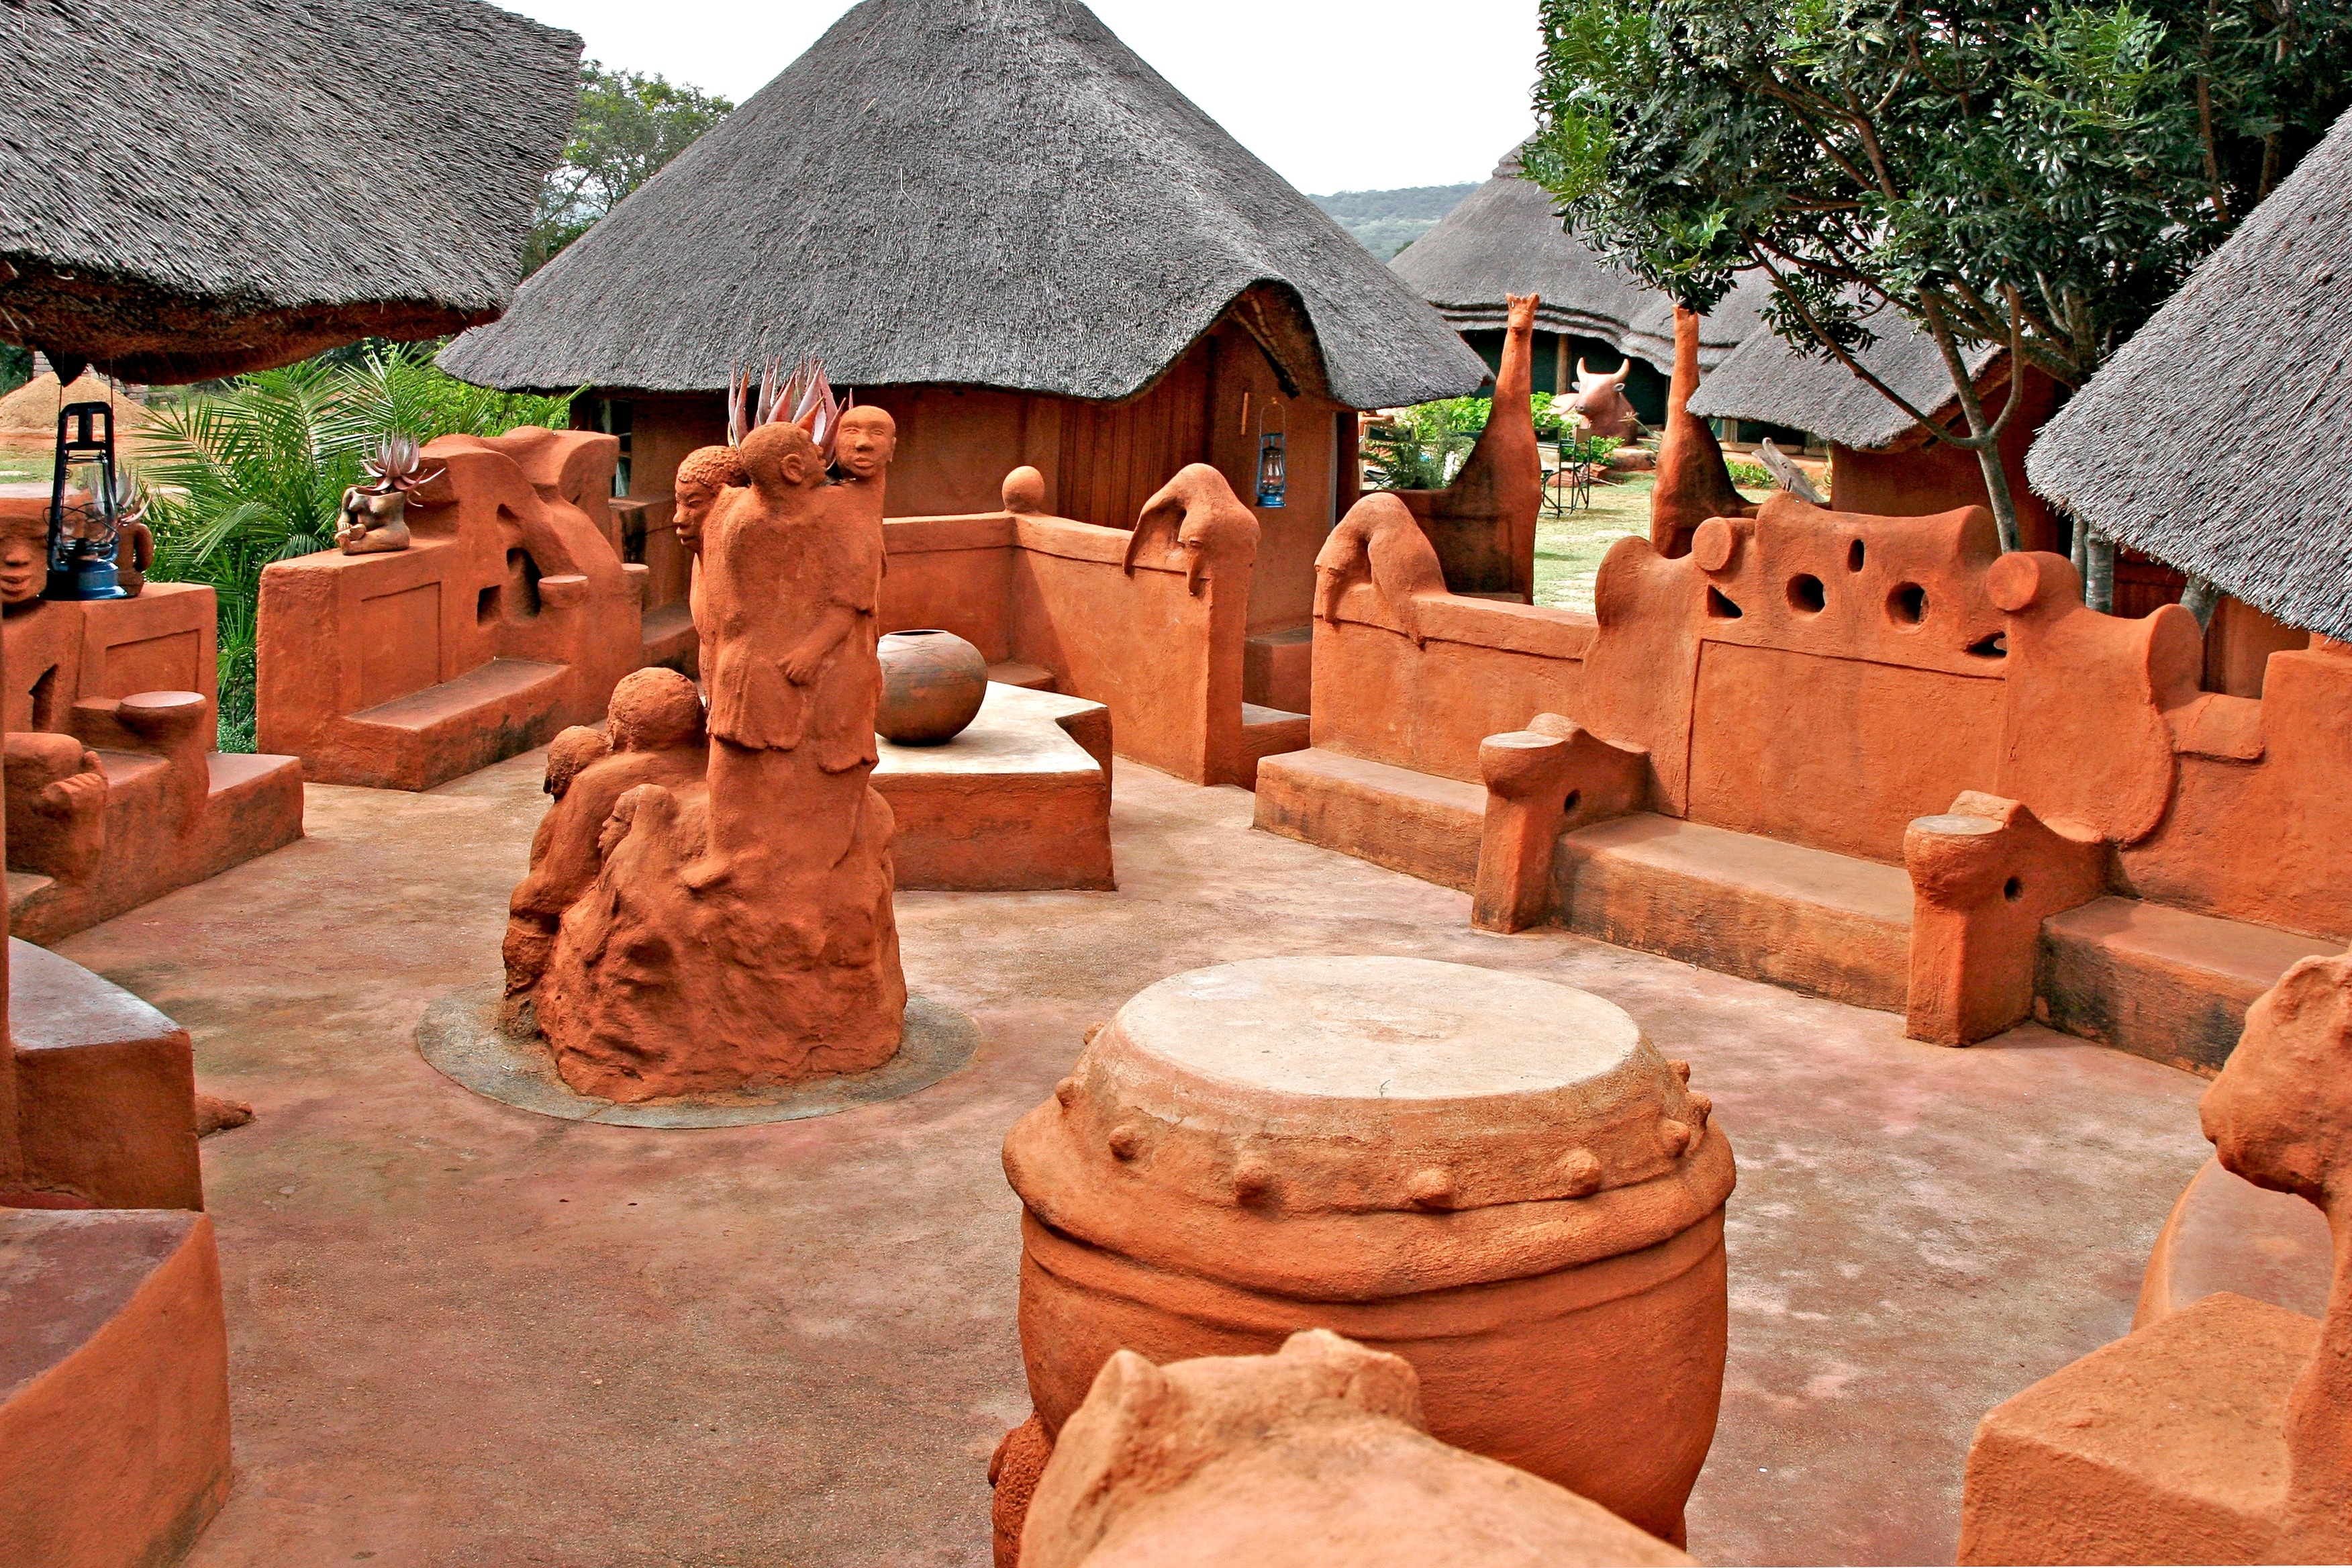 Leshiba Wilderness - Venda Village Lodge Courtyard by Noria Mabasa - Limpopo South Africa